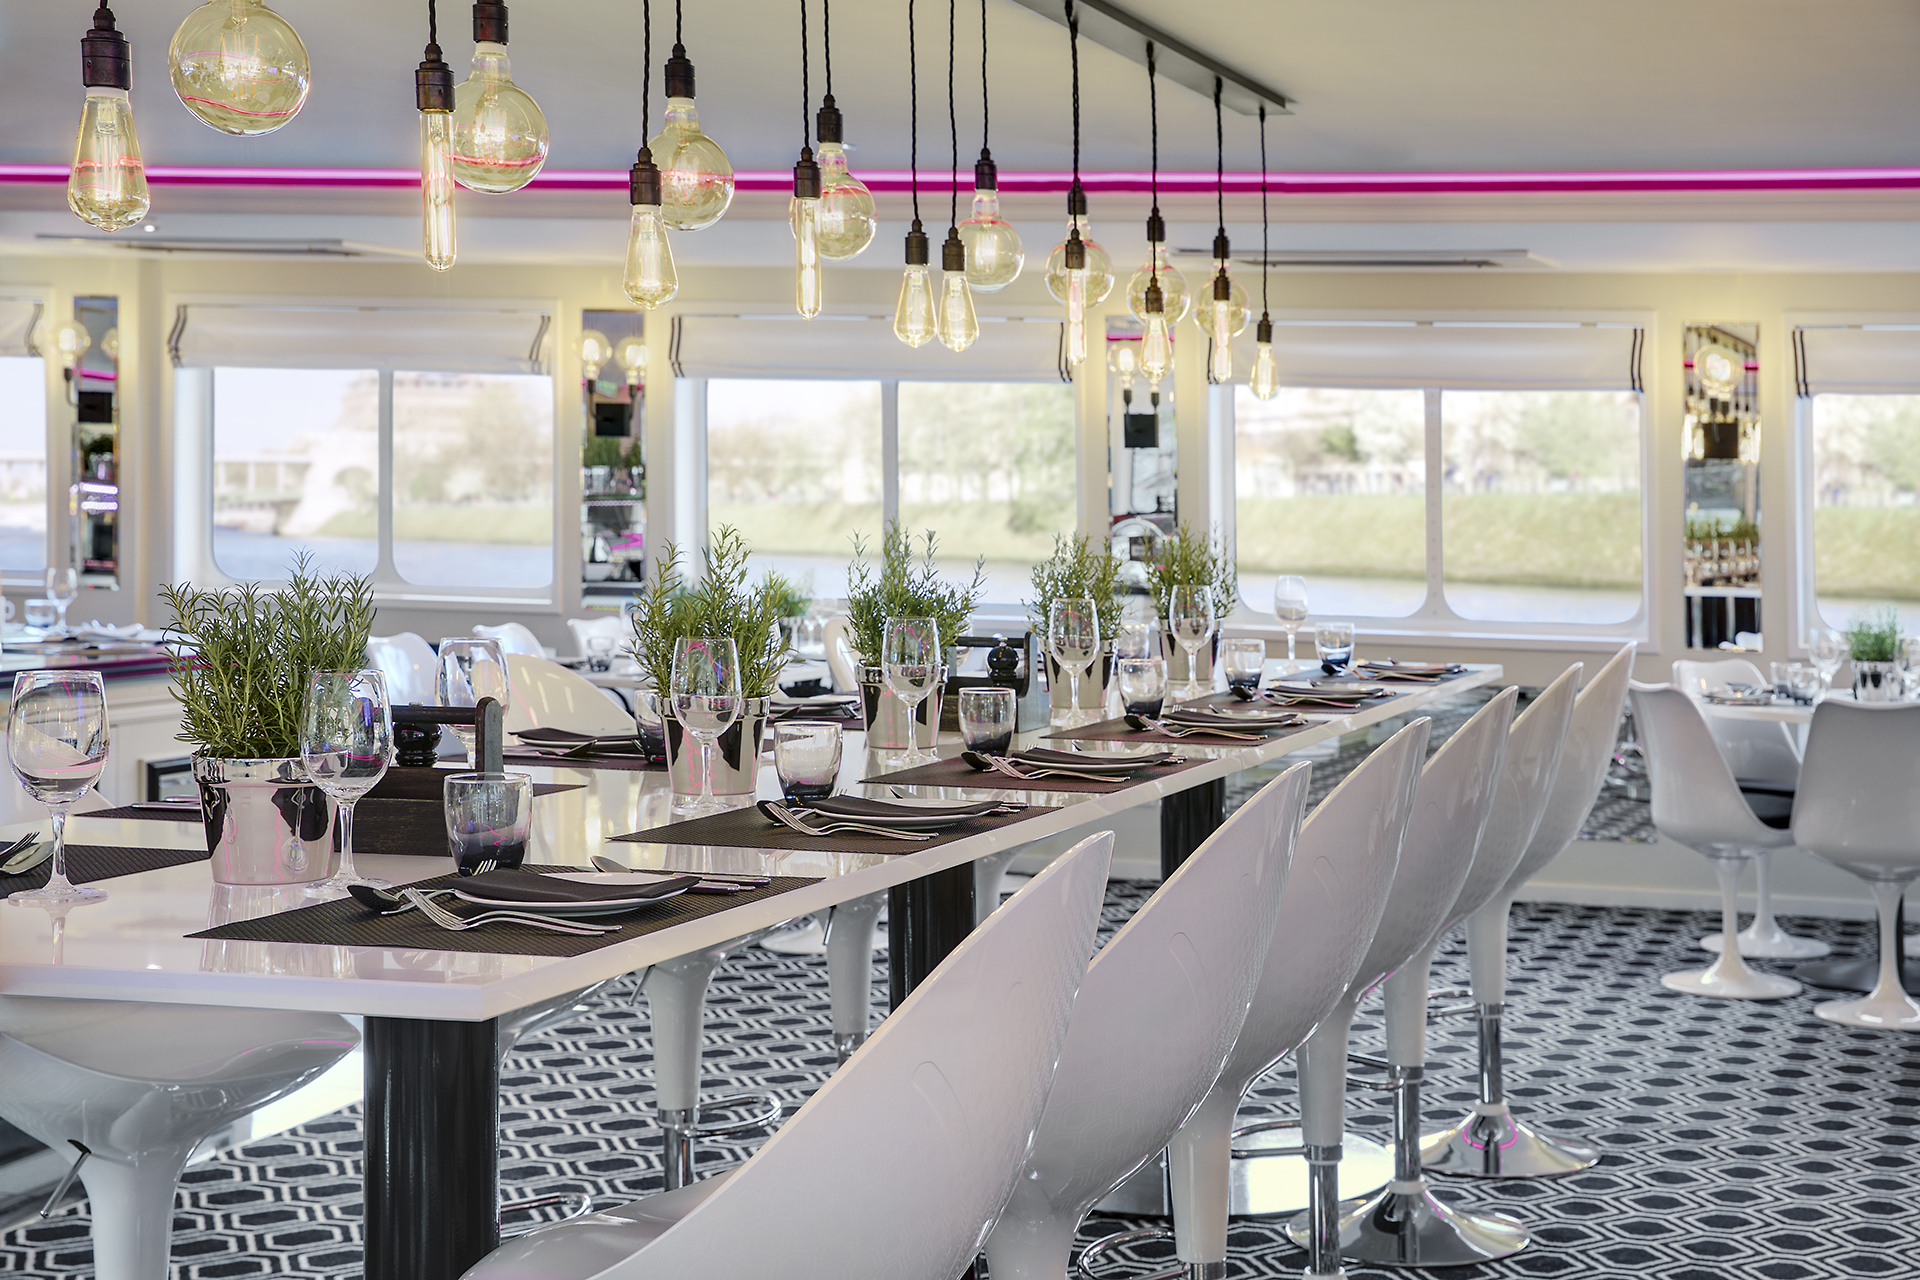 The cruises offer farm-to-table cuisine at communal dining spaces, as well as yoga and painting classes.